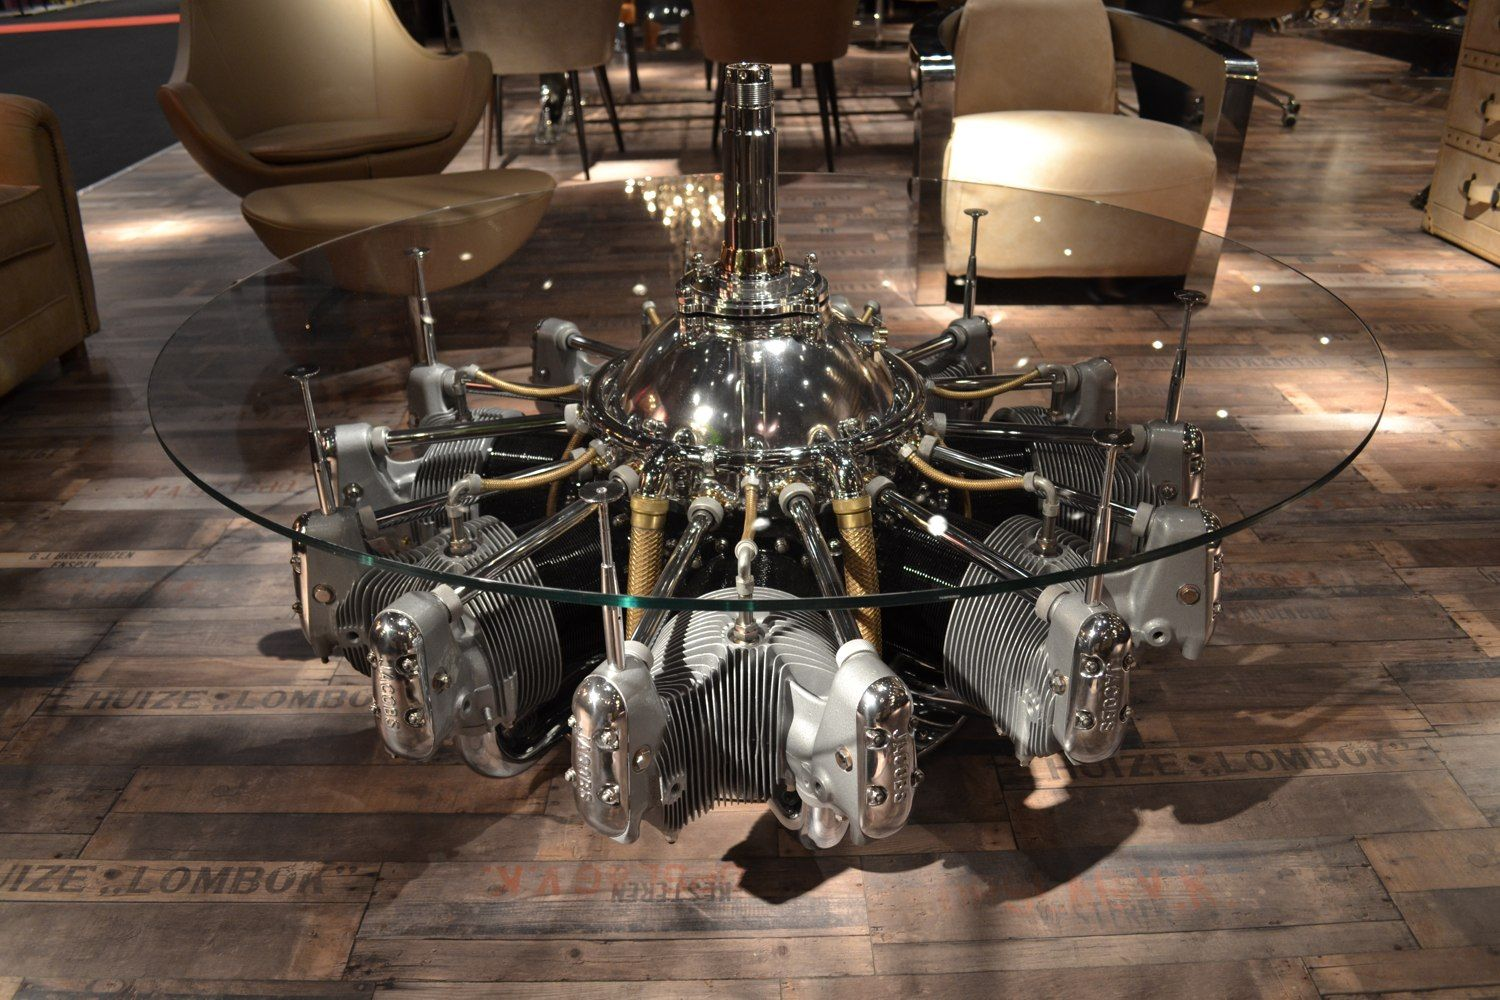 Jacobs radial engine coffee table - Table a caff fait avec moteur radial  Jacobs - Tavolo